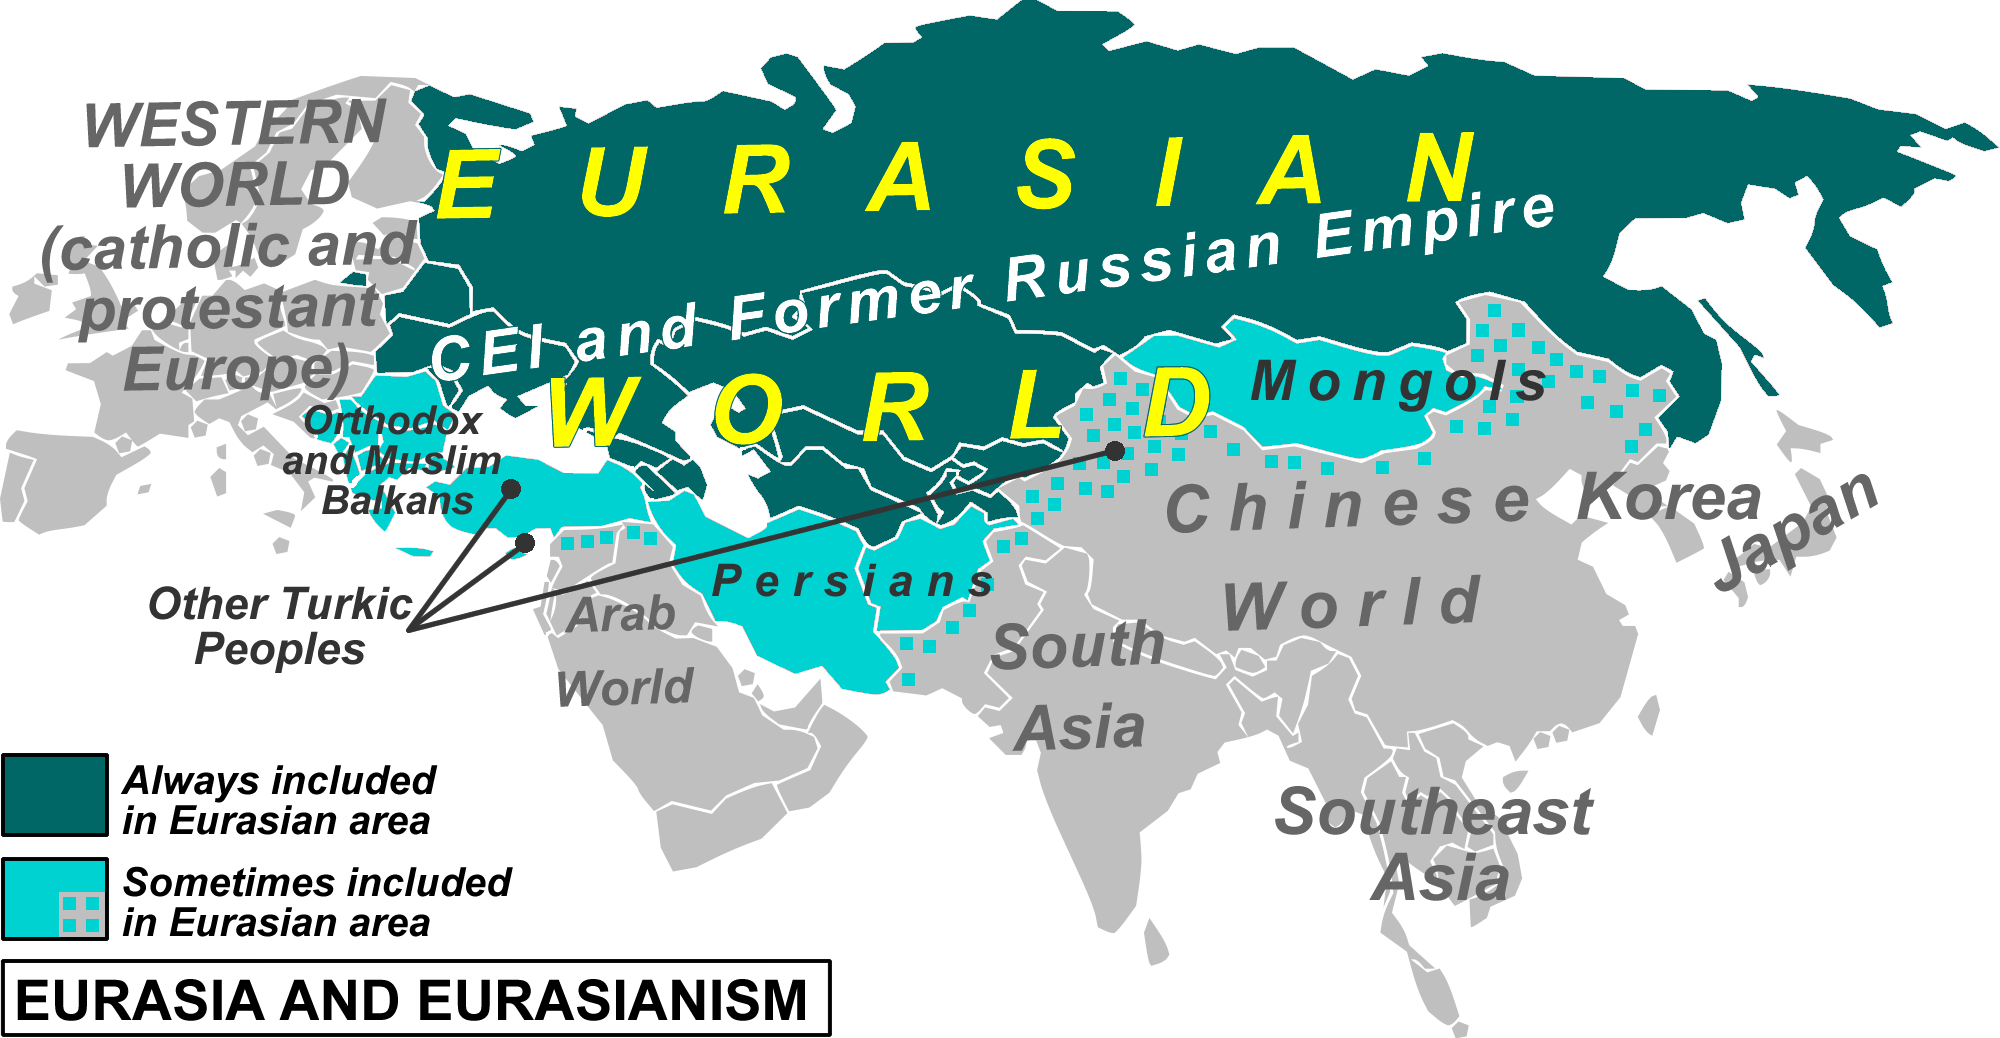 http://upload.wikimedia.org/wikipedia/commons/c/c9/Eurasia_and_eurasianism.png